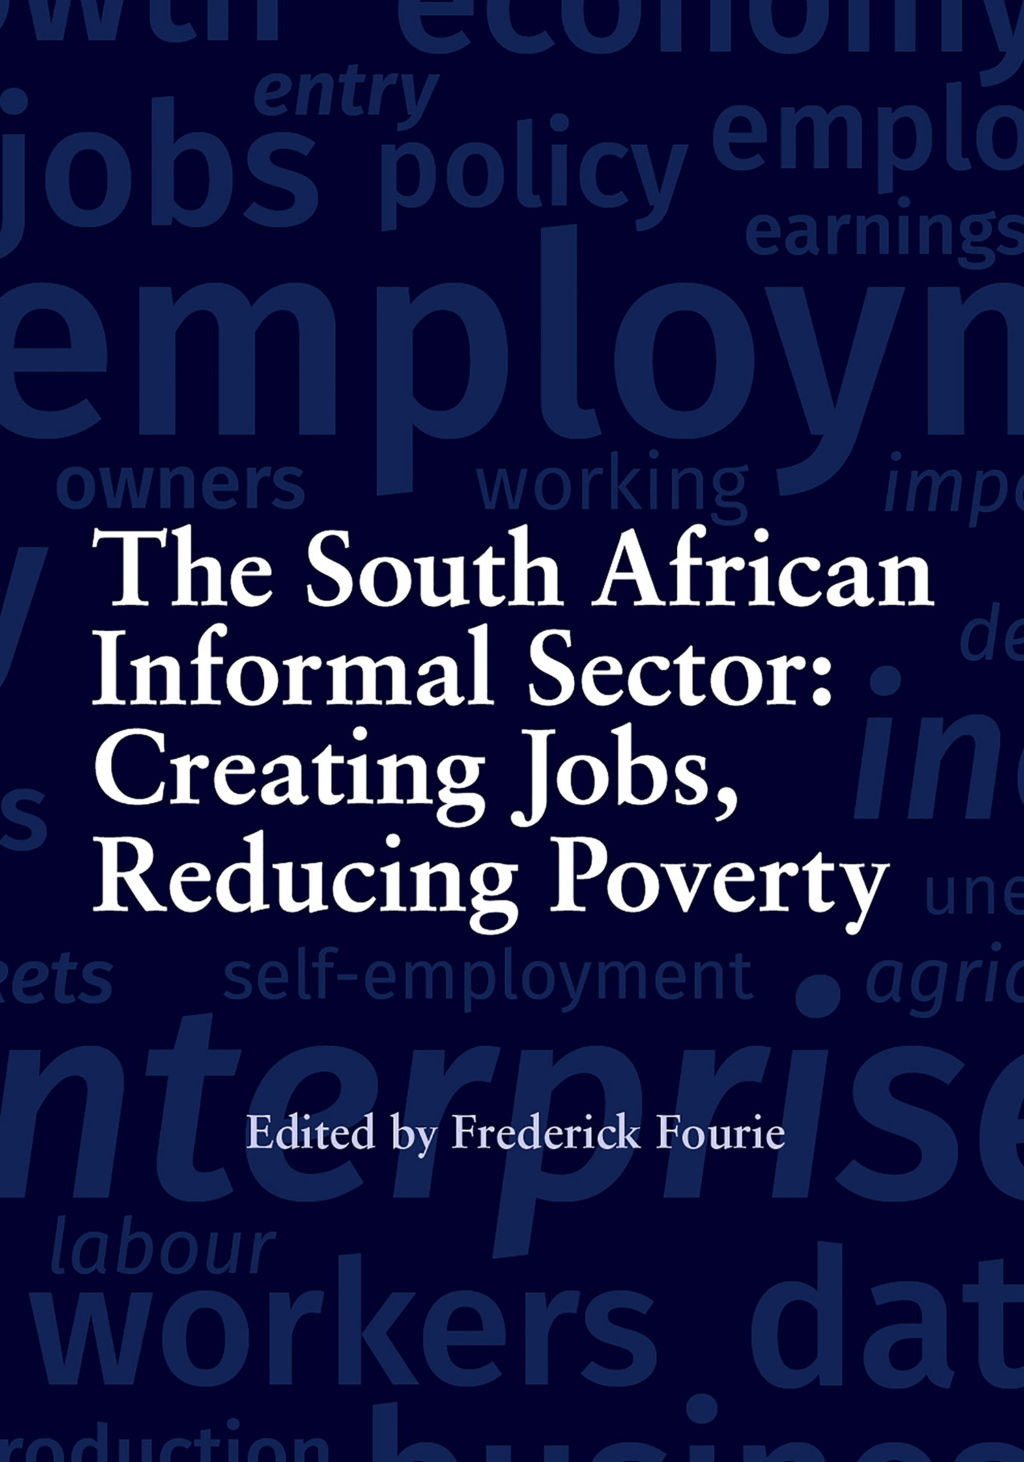 The South African Informal Sector